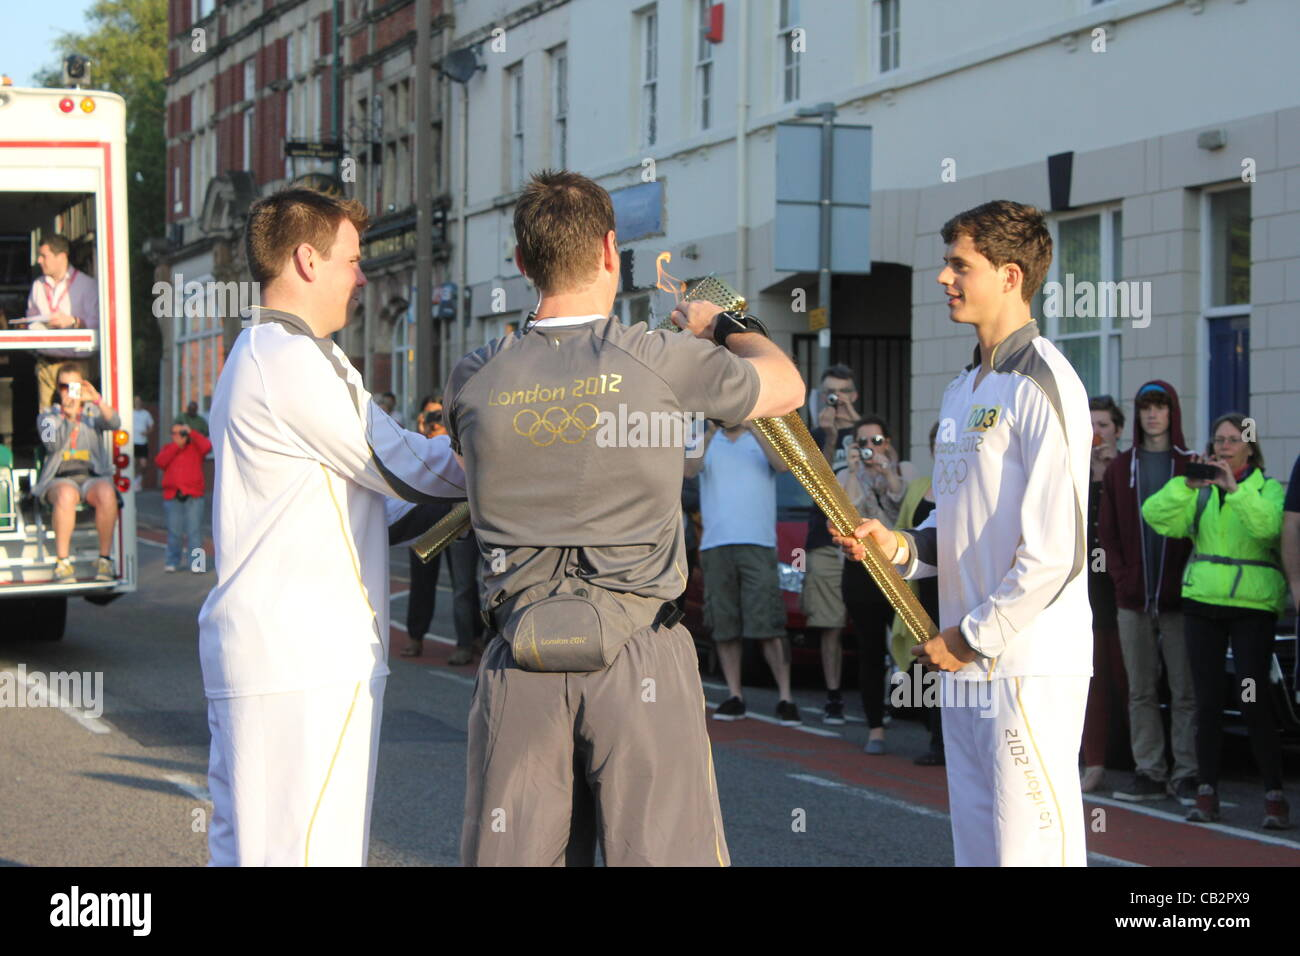 CARDIFF, UK, 26th May 2012. An official supervises as Zak Lee Green (right) hands the Olympic flame over to the - Stock Image